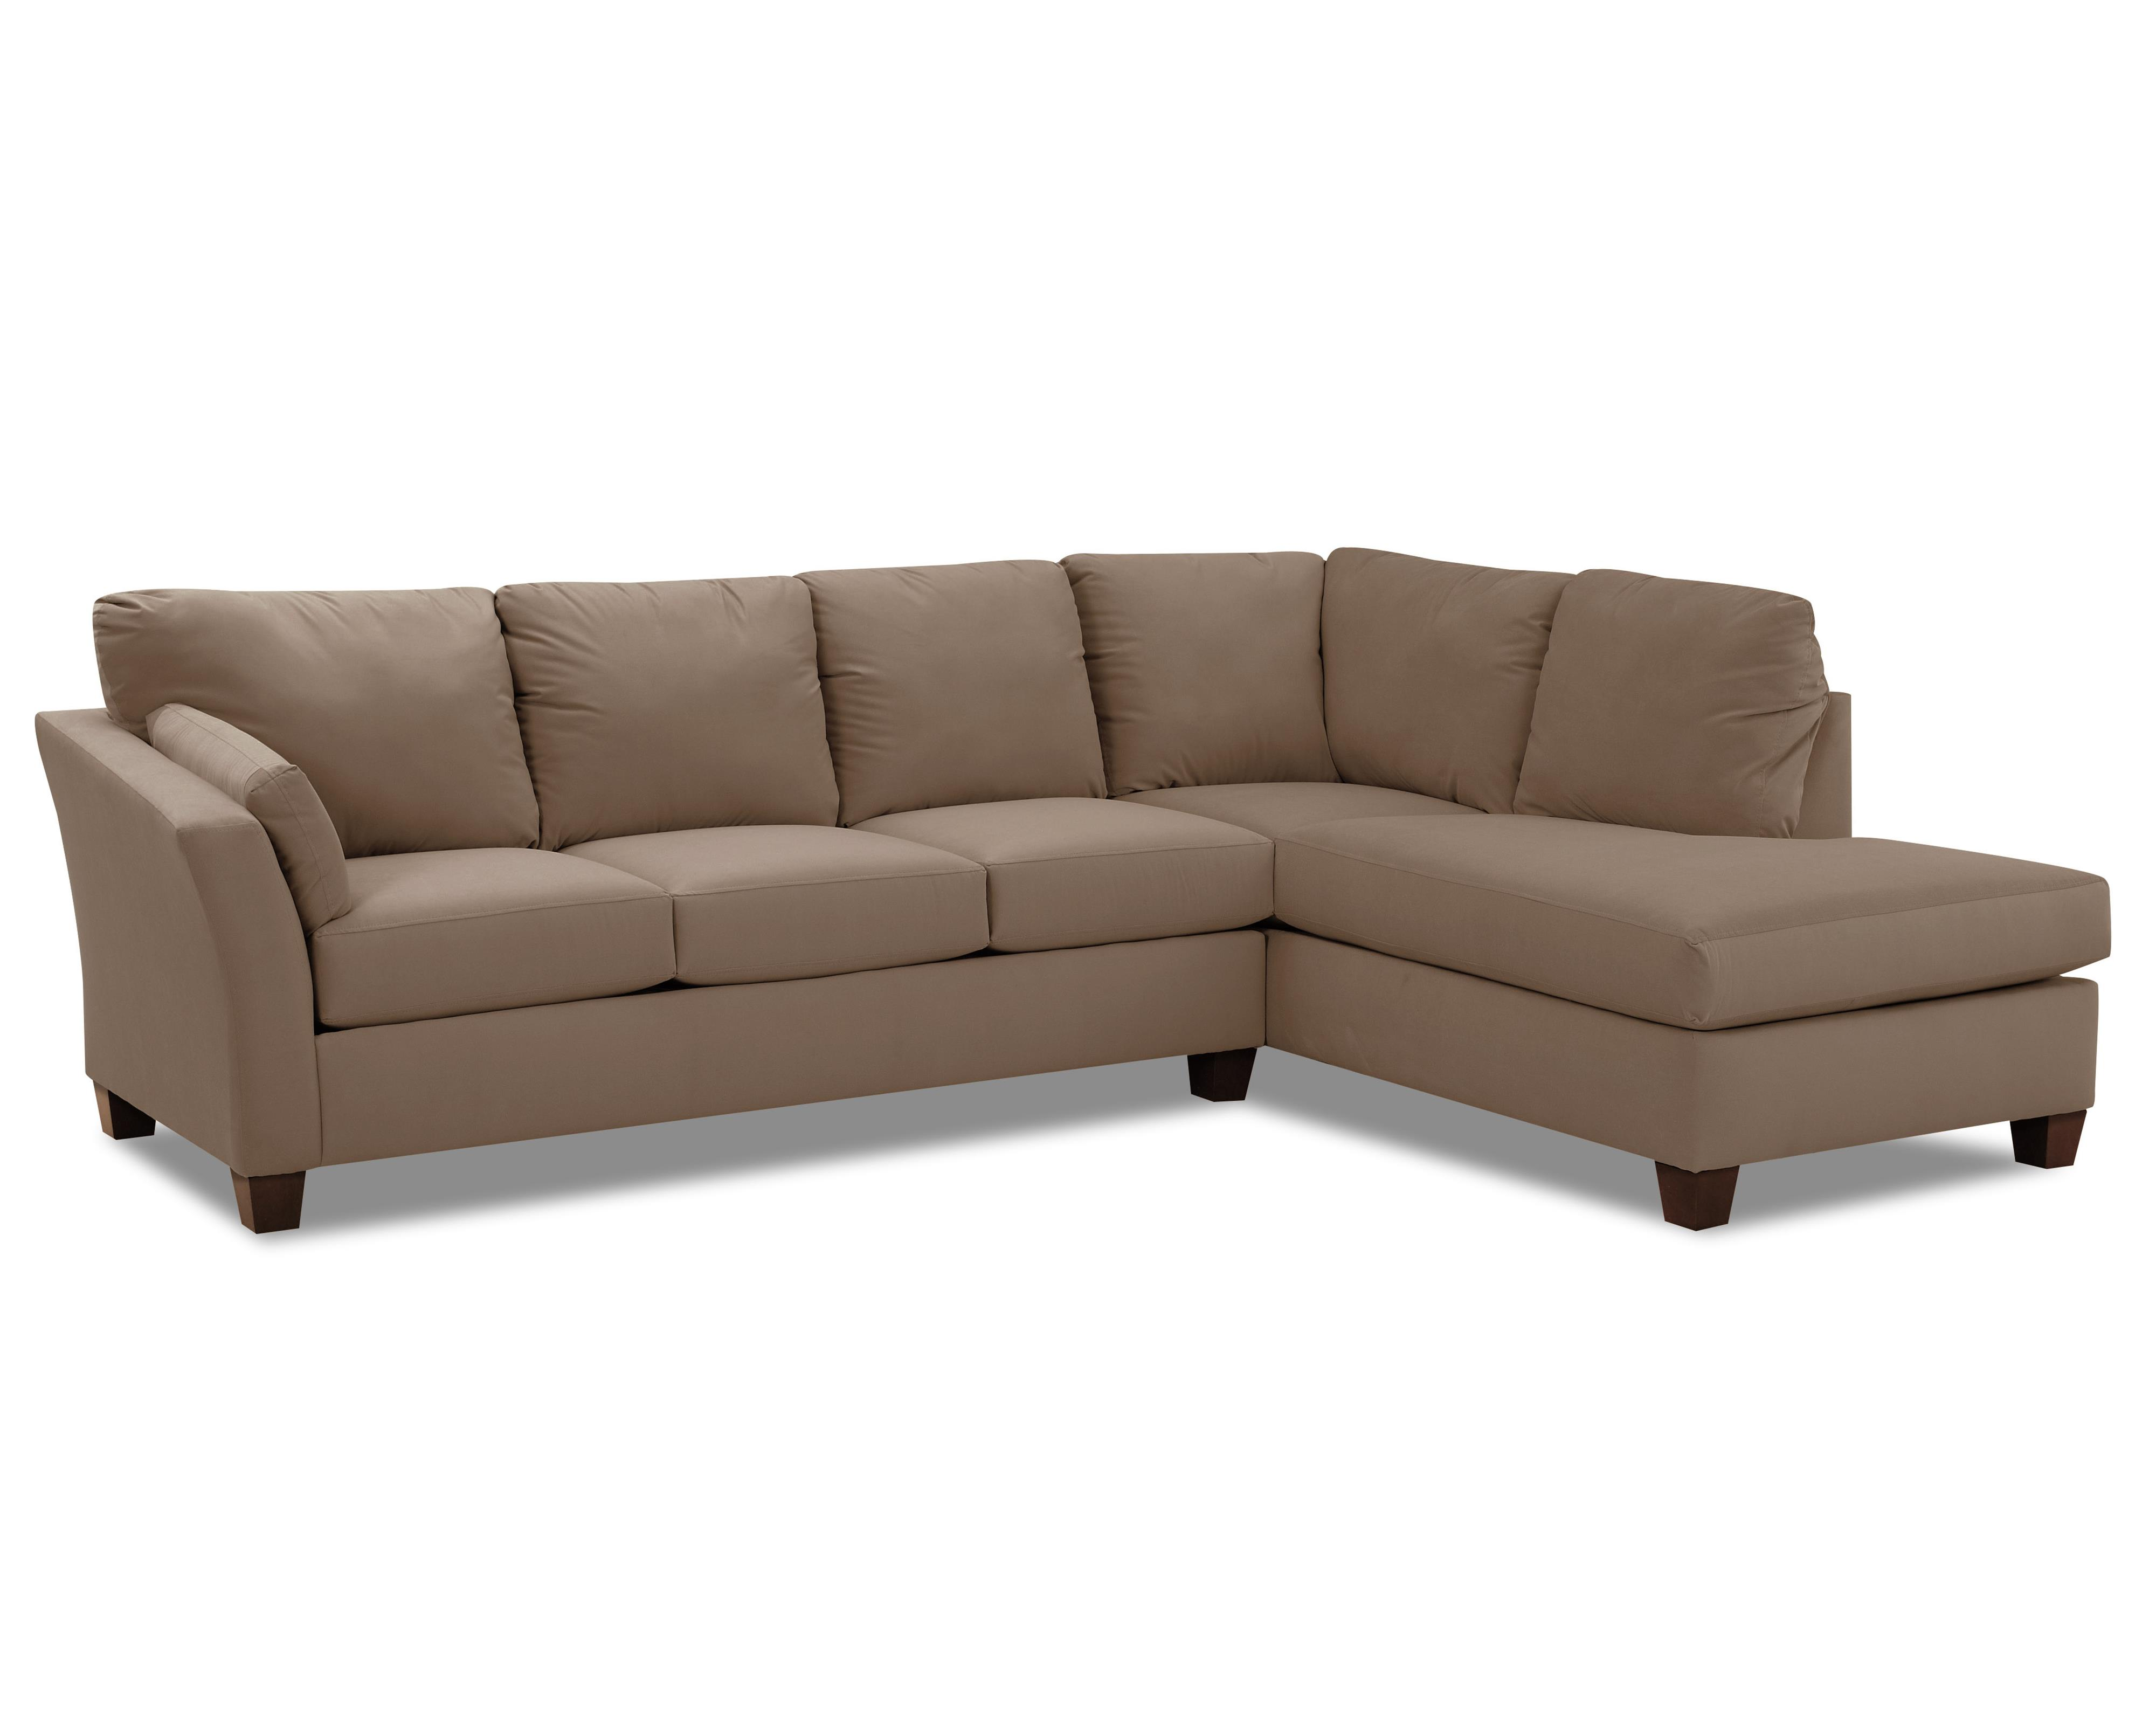 klaussner sofa and loveseat set wood bed plans drew two piece sectional with chaise